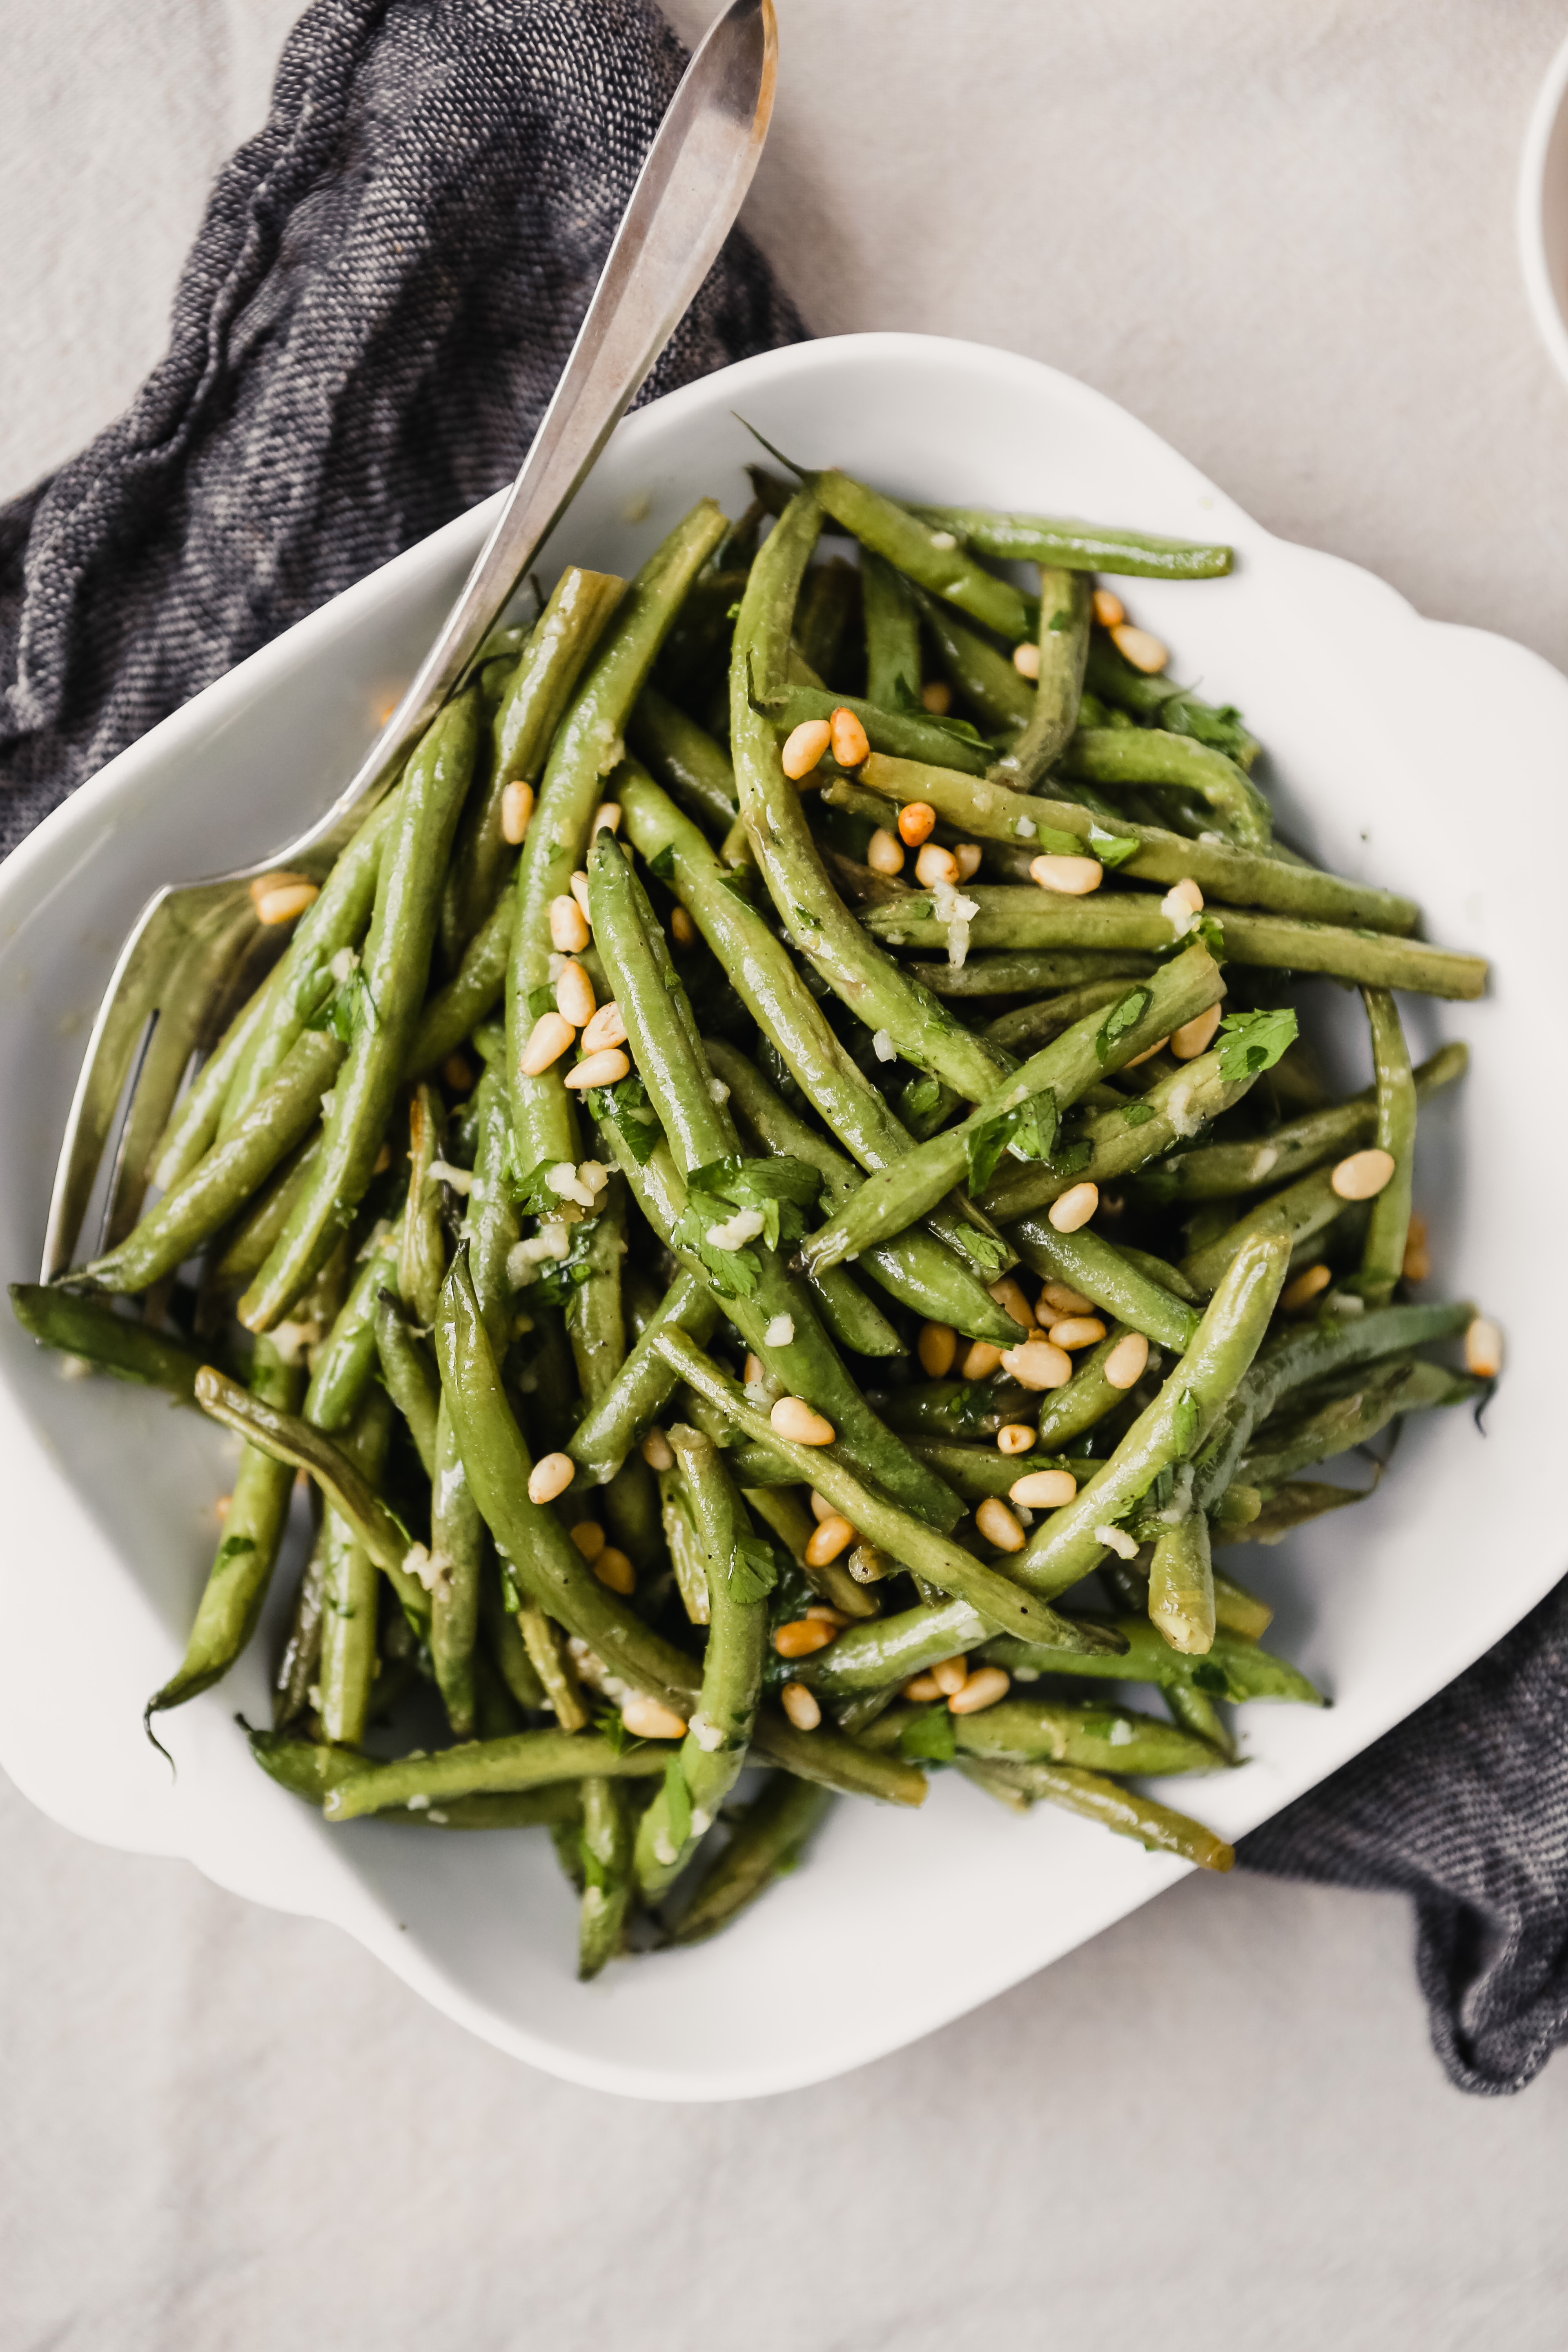 Roasted green beans with pine nuts in a square white serving dish.